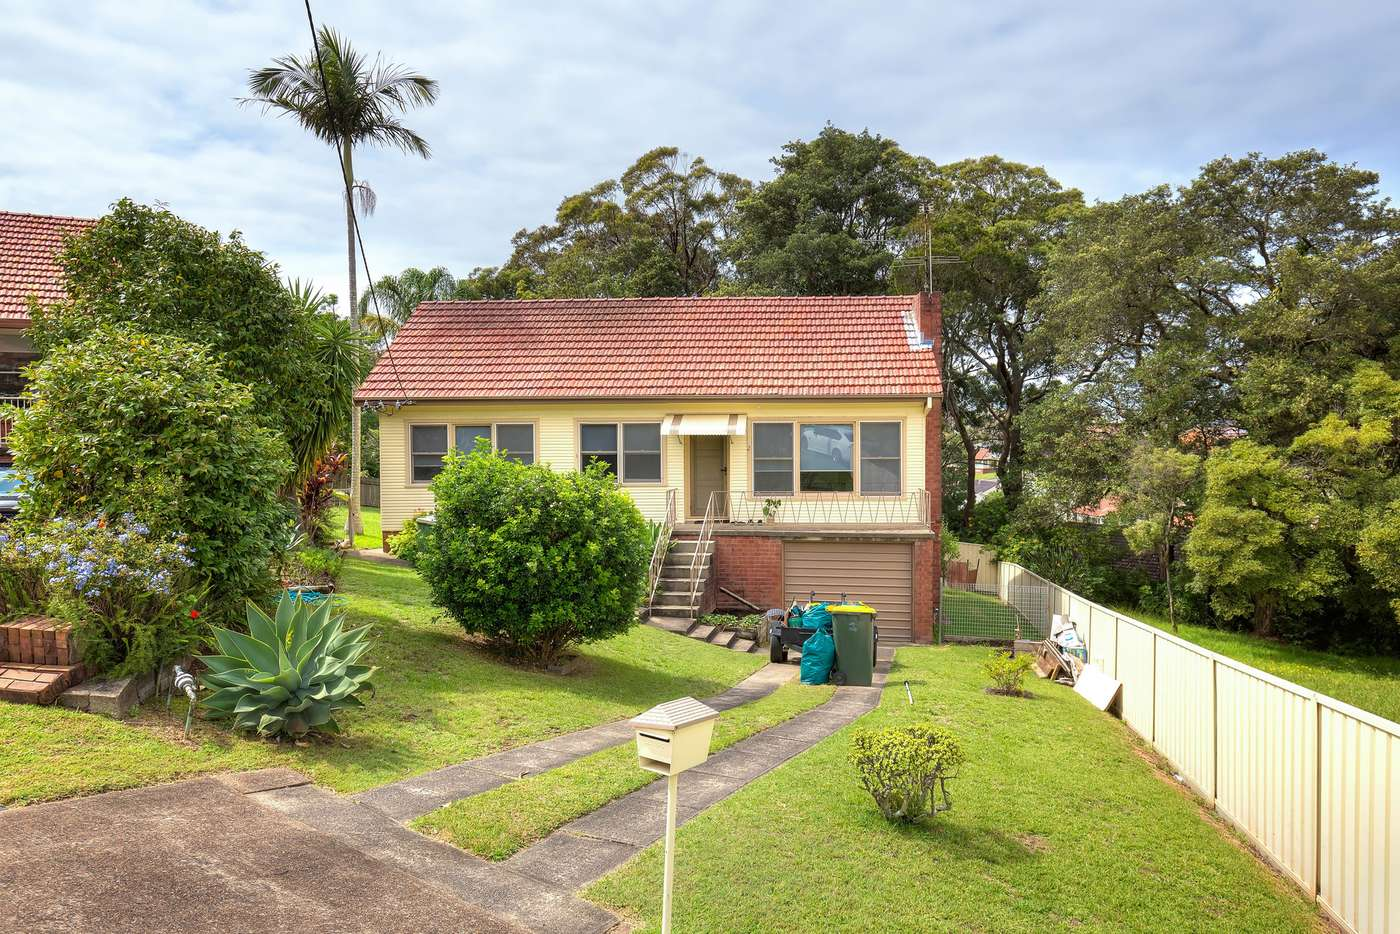 Main view of Homely house listing, 2 Ridley Street, Charlestown NSW 2290